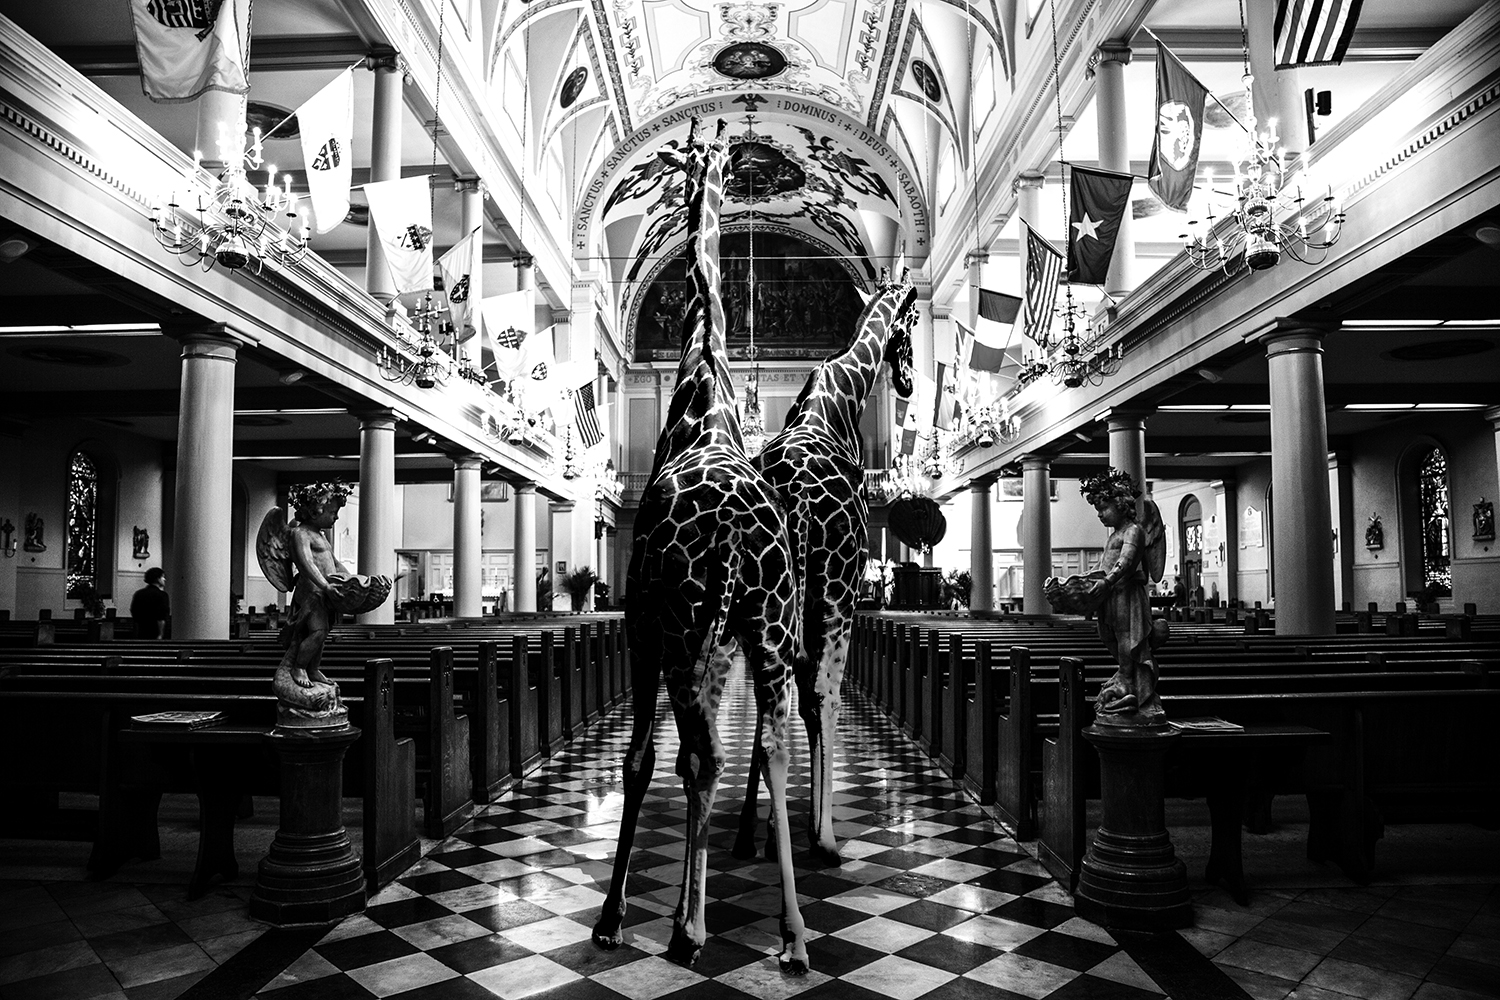 Giraffes in St. Louis Cathedral.jpg